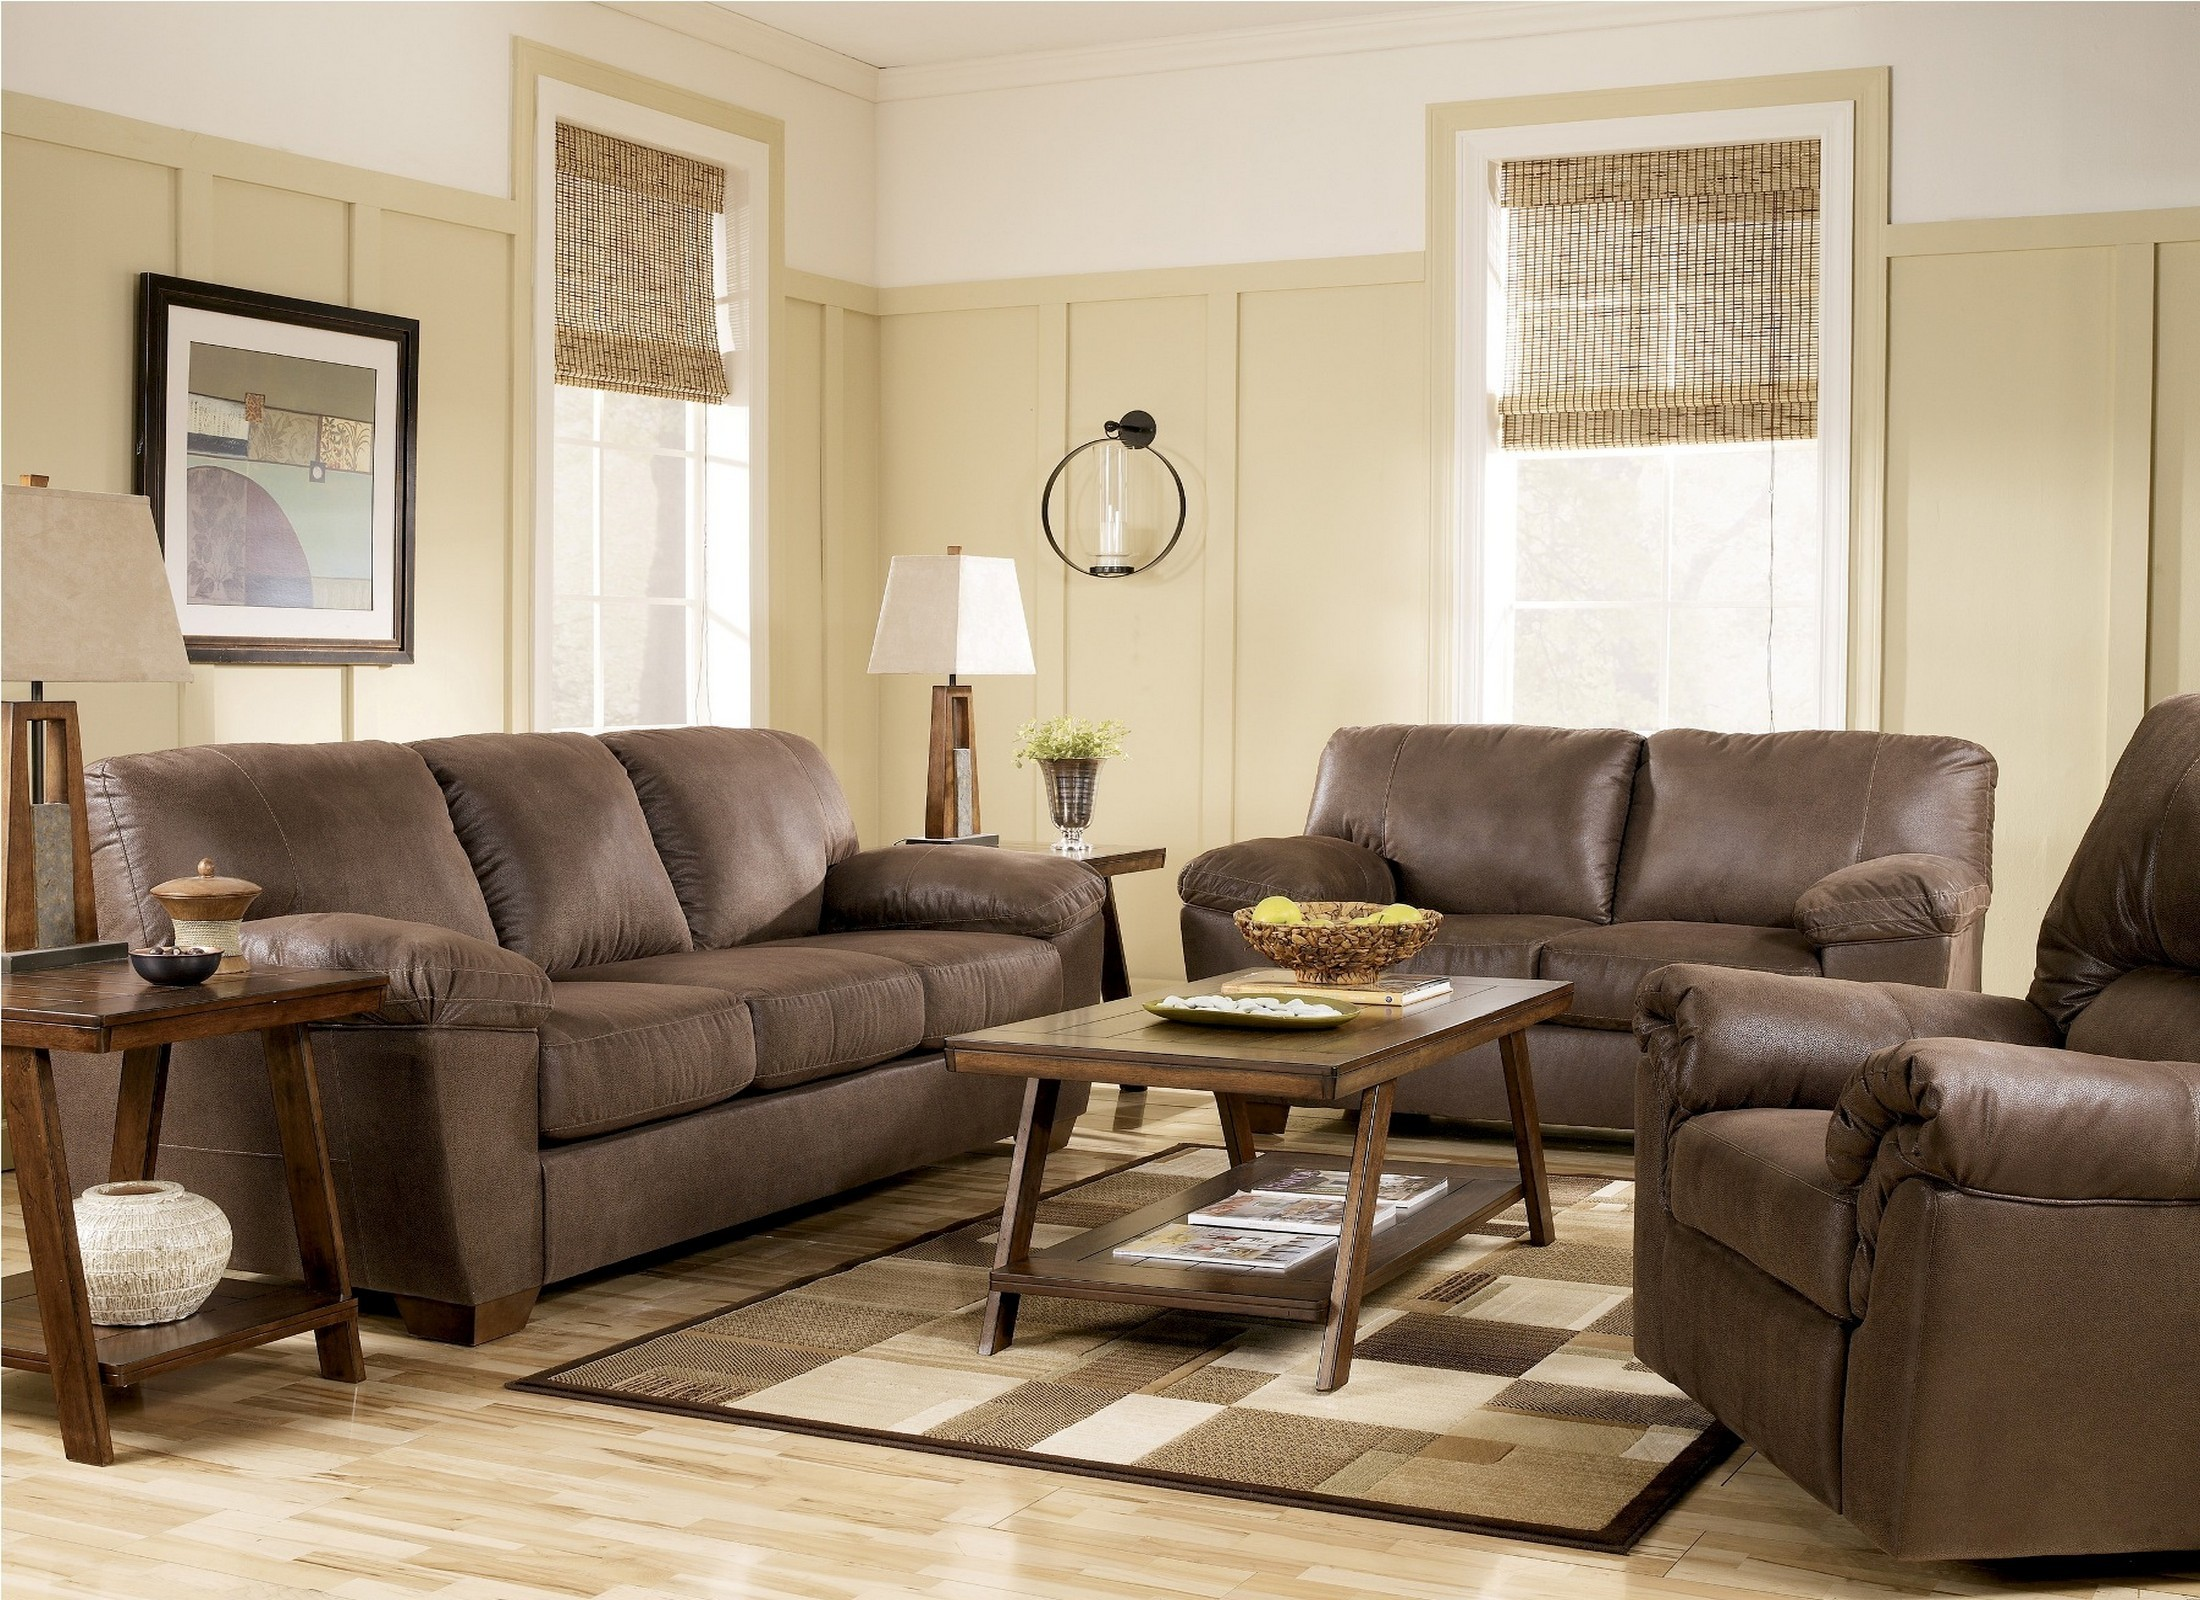 Amazon Walnut Living Room Set From Ashley (67505